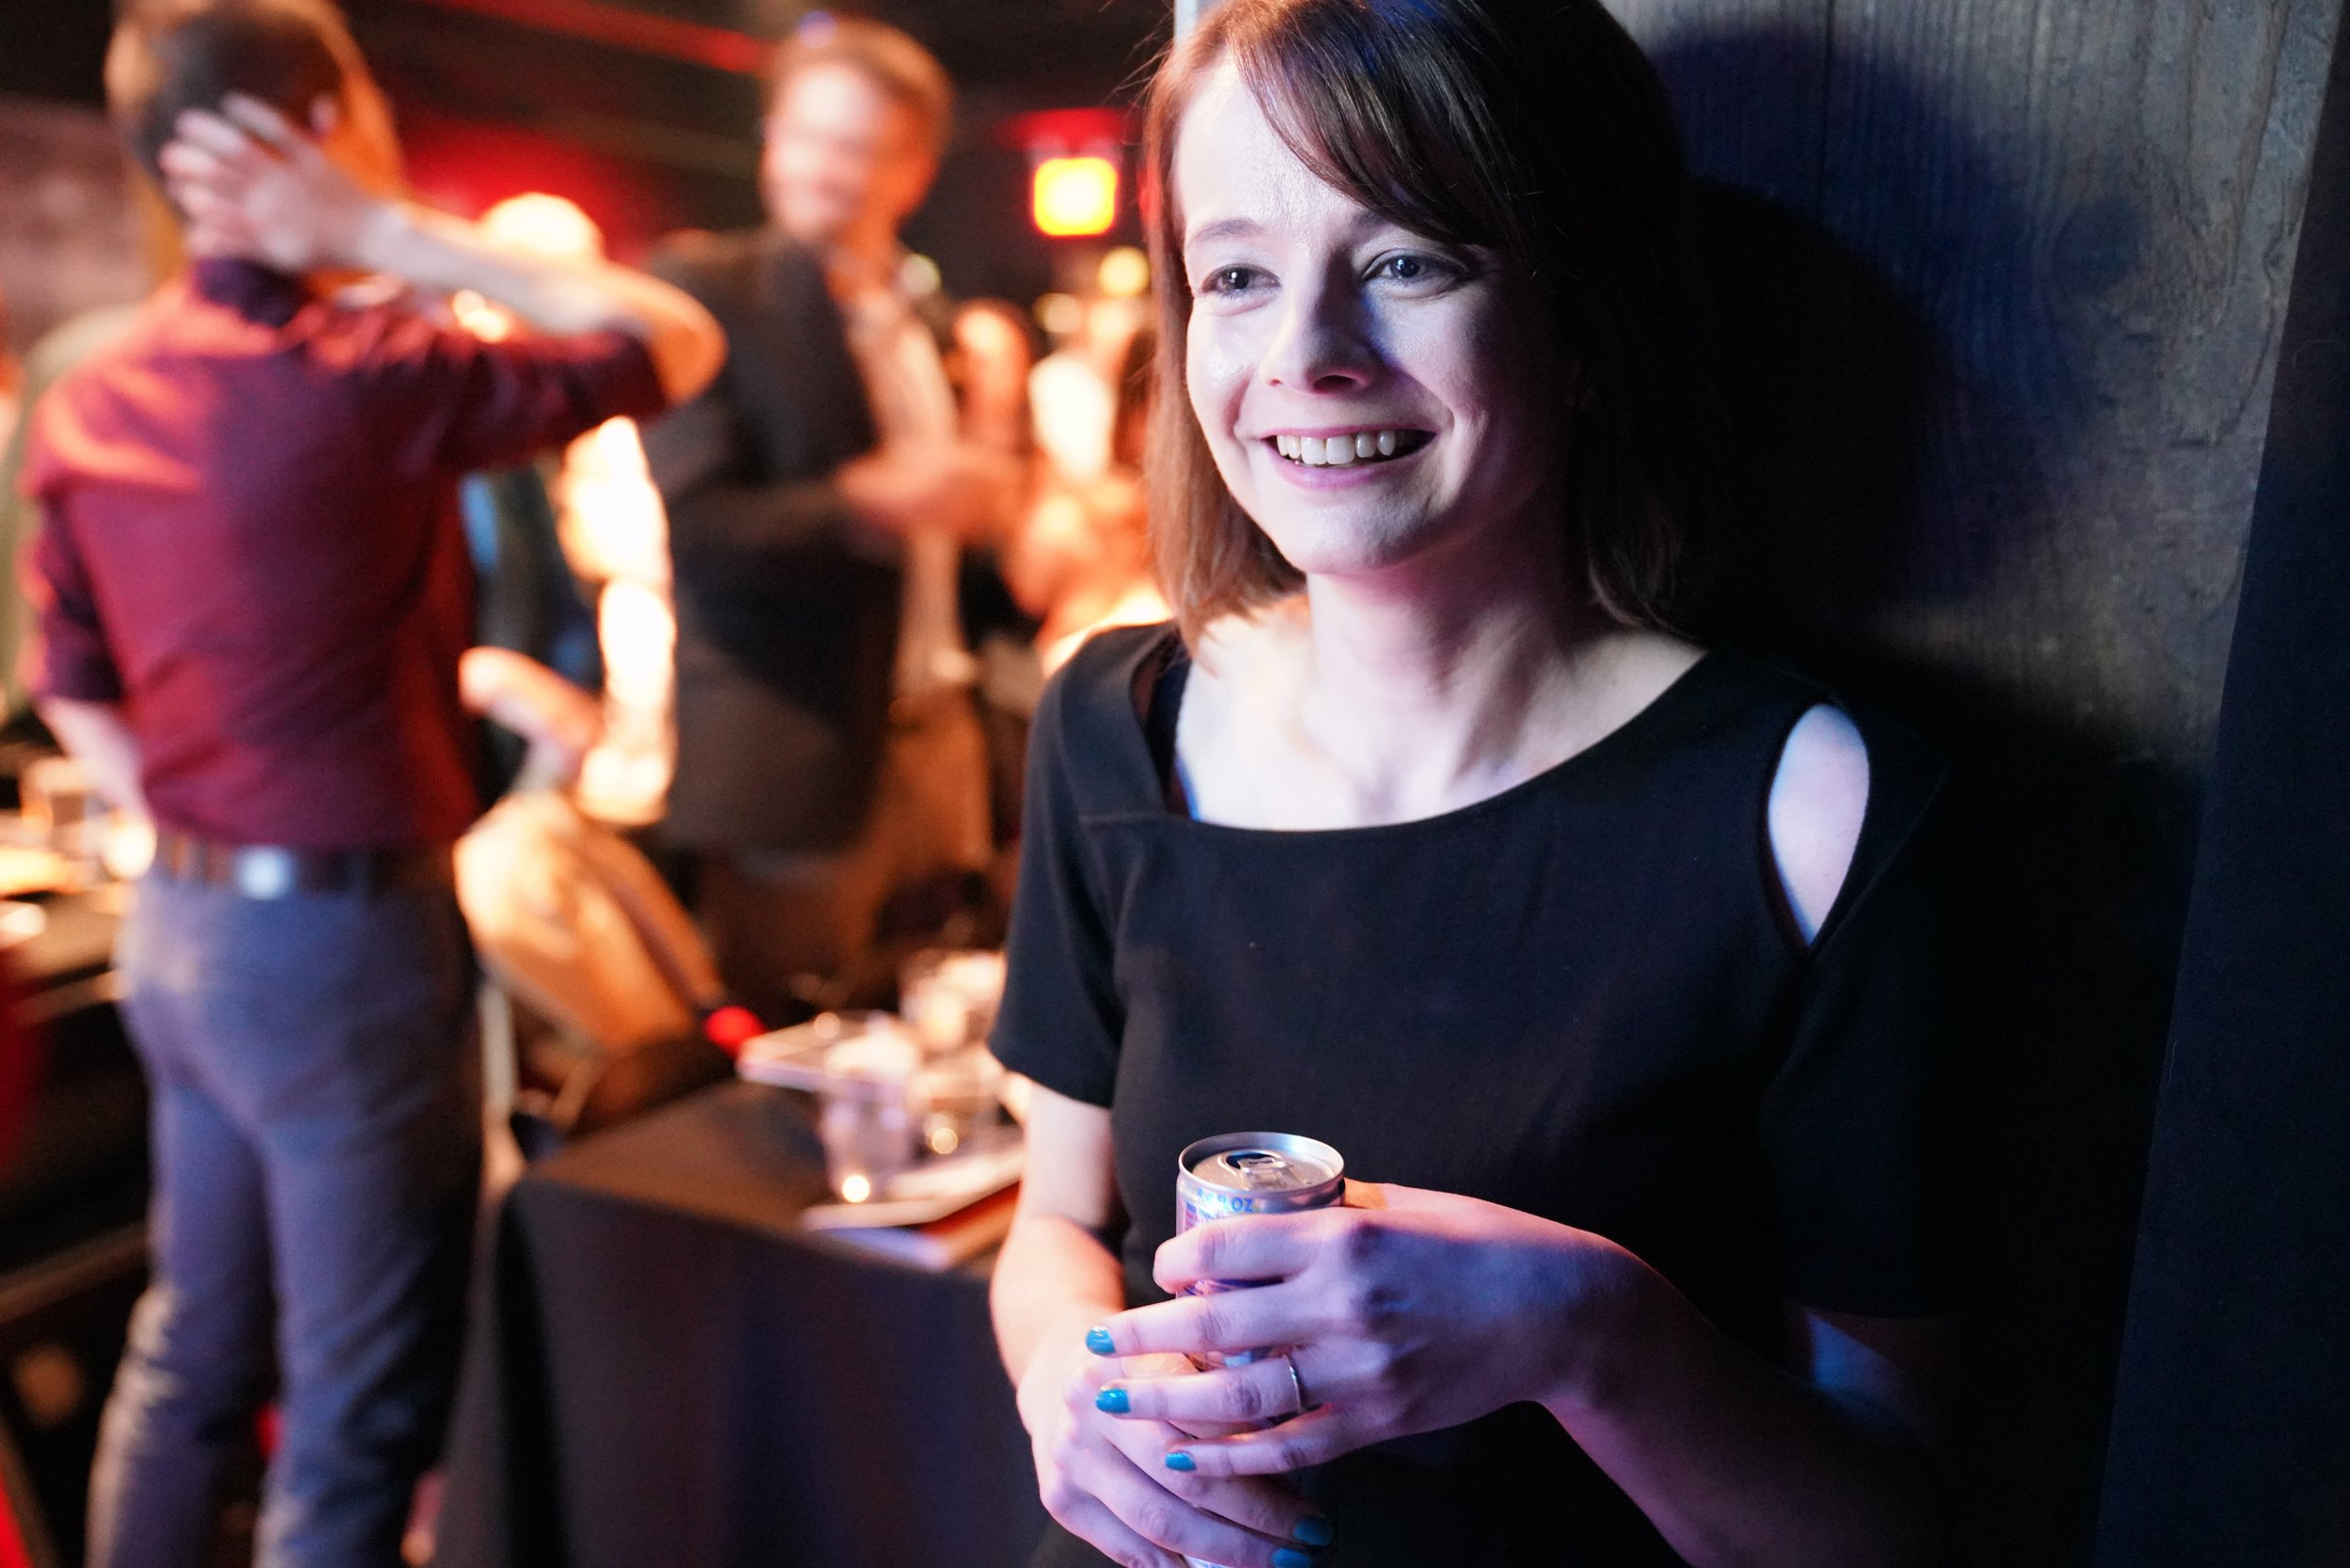 Story Collider artistic director Erin Barker savors her signature Red Bull while preparing to go on for the second half.